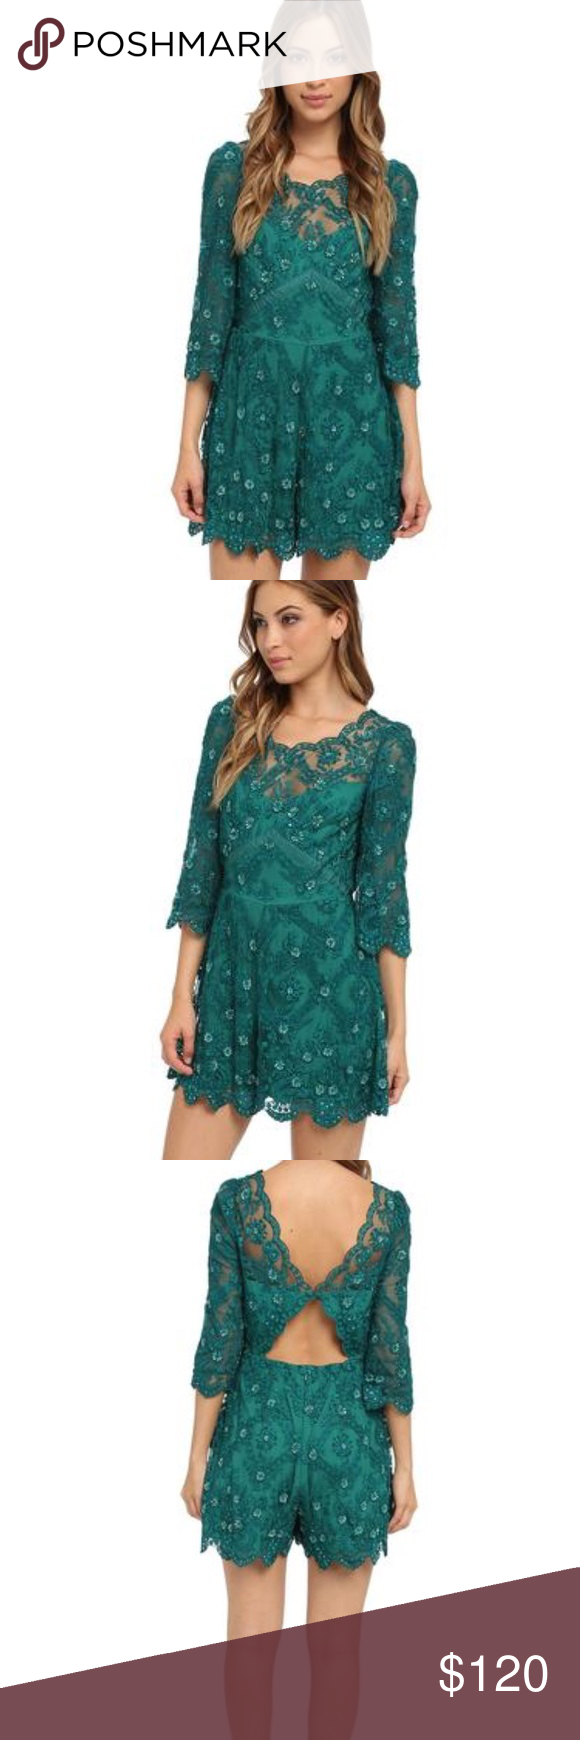 5b535bf07fea 💚Free People Songbird Emerald Green Sequin Romper Free People Green Songbird  Emerald Sequin Embellished Lace